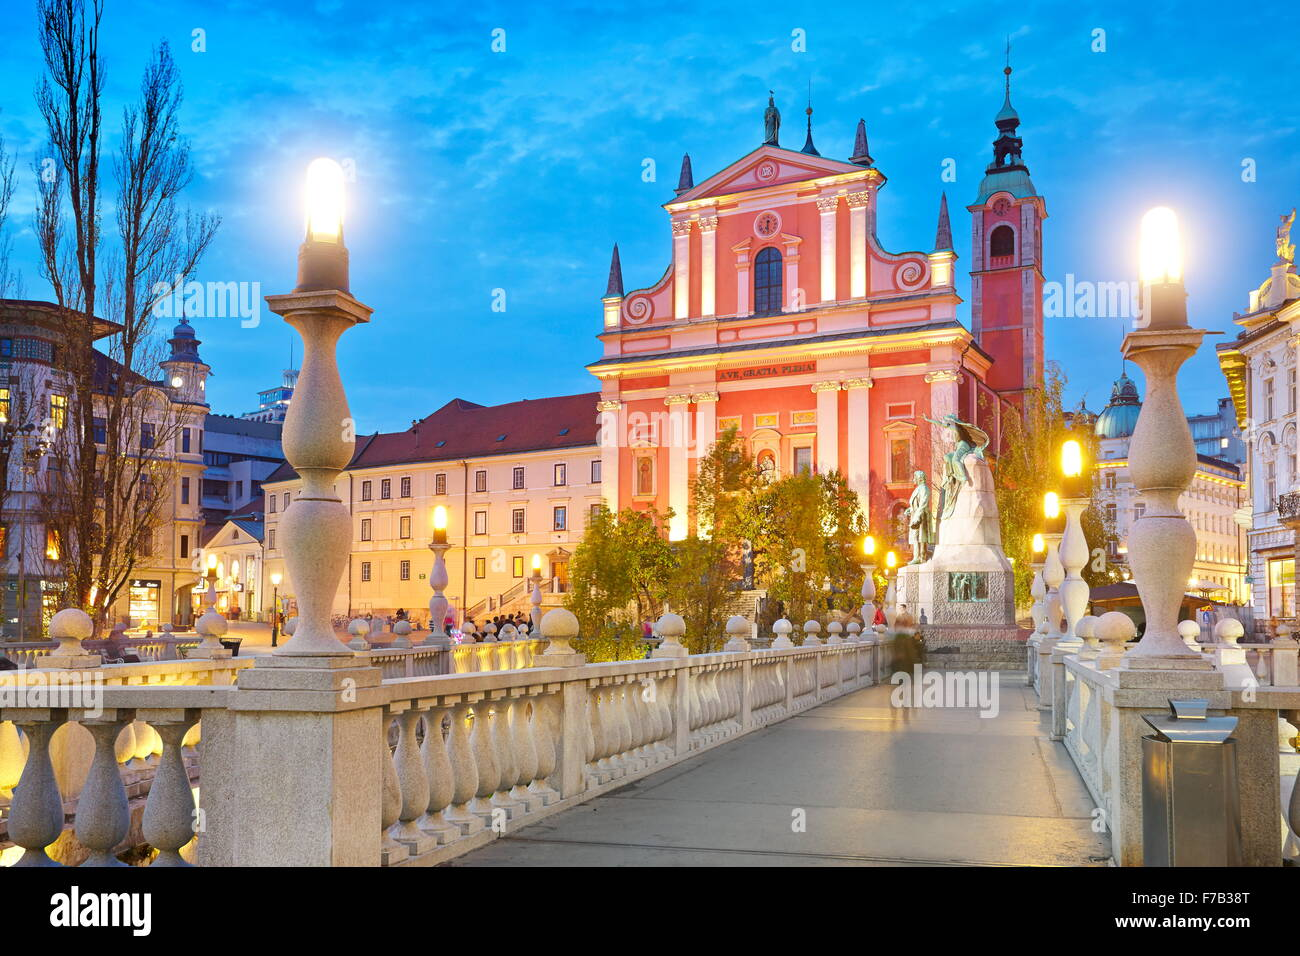 Ljubljana, evening view at Franciscan Church, Slovenia - Stock Image